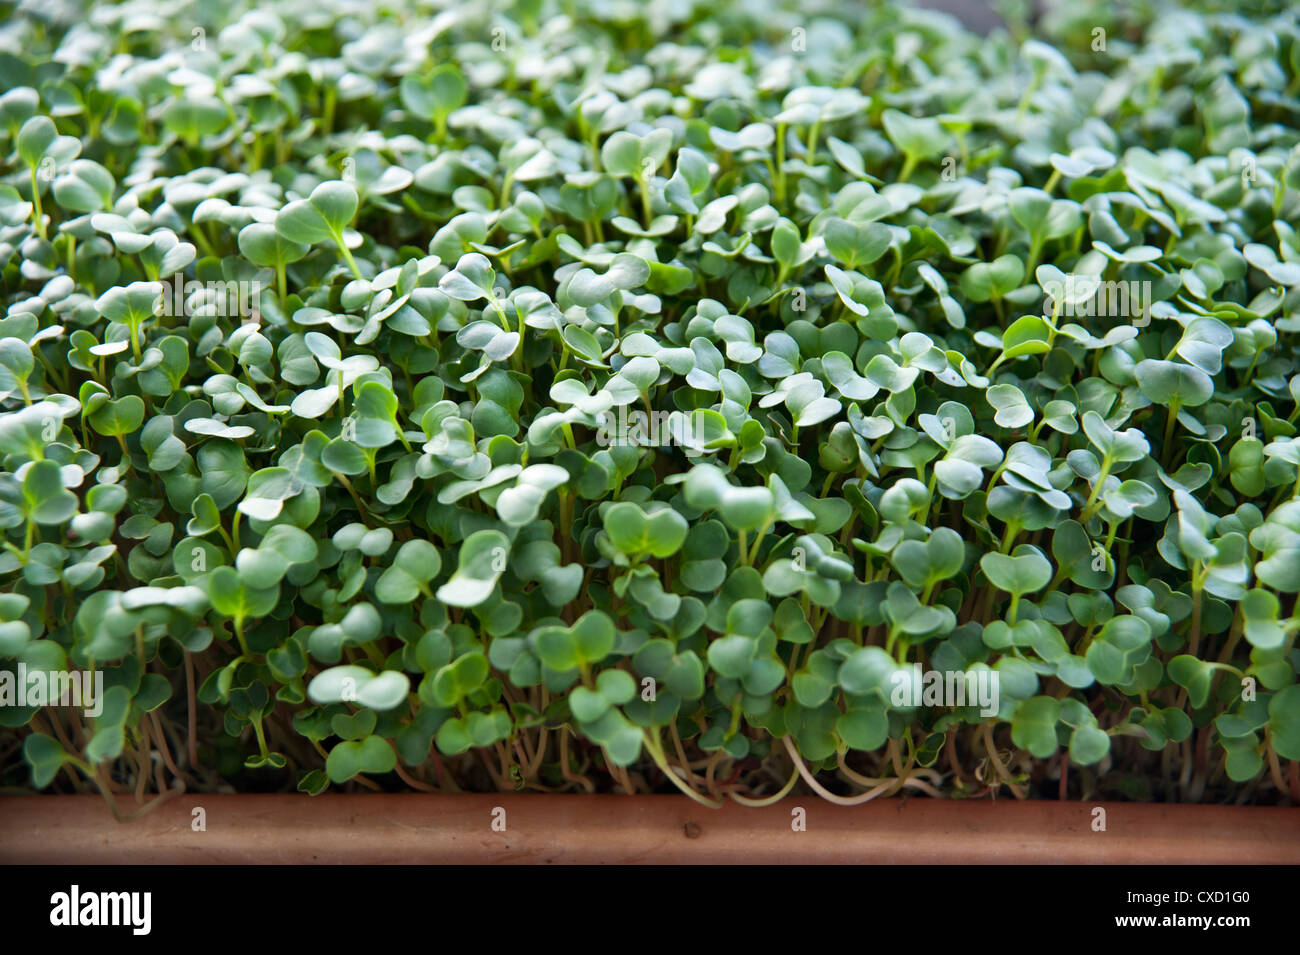 Bean Sprouts close up on an organic farm - Stock Image